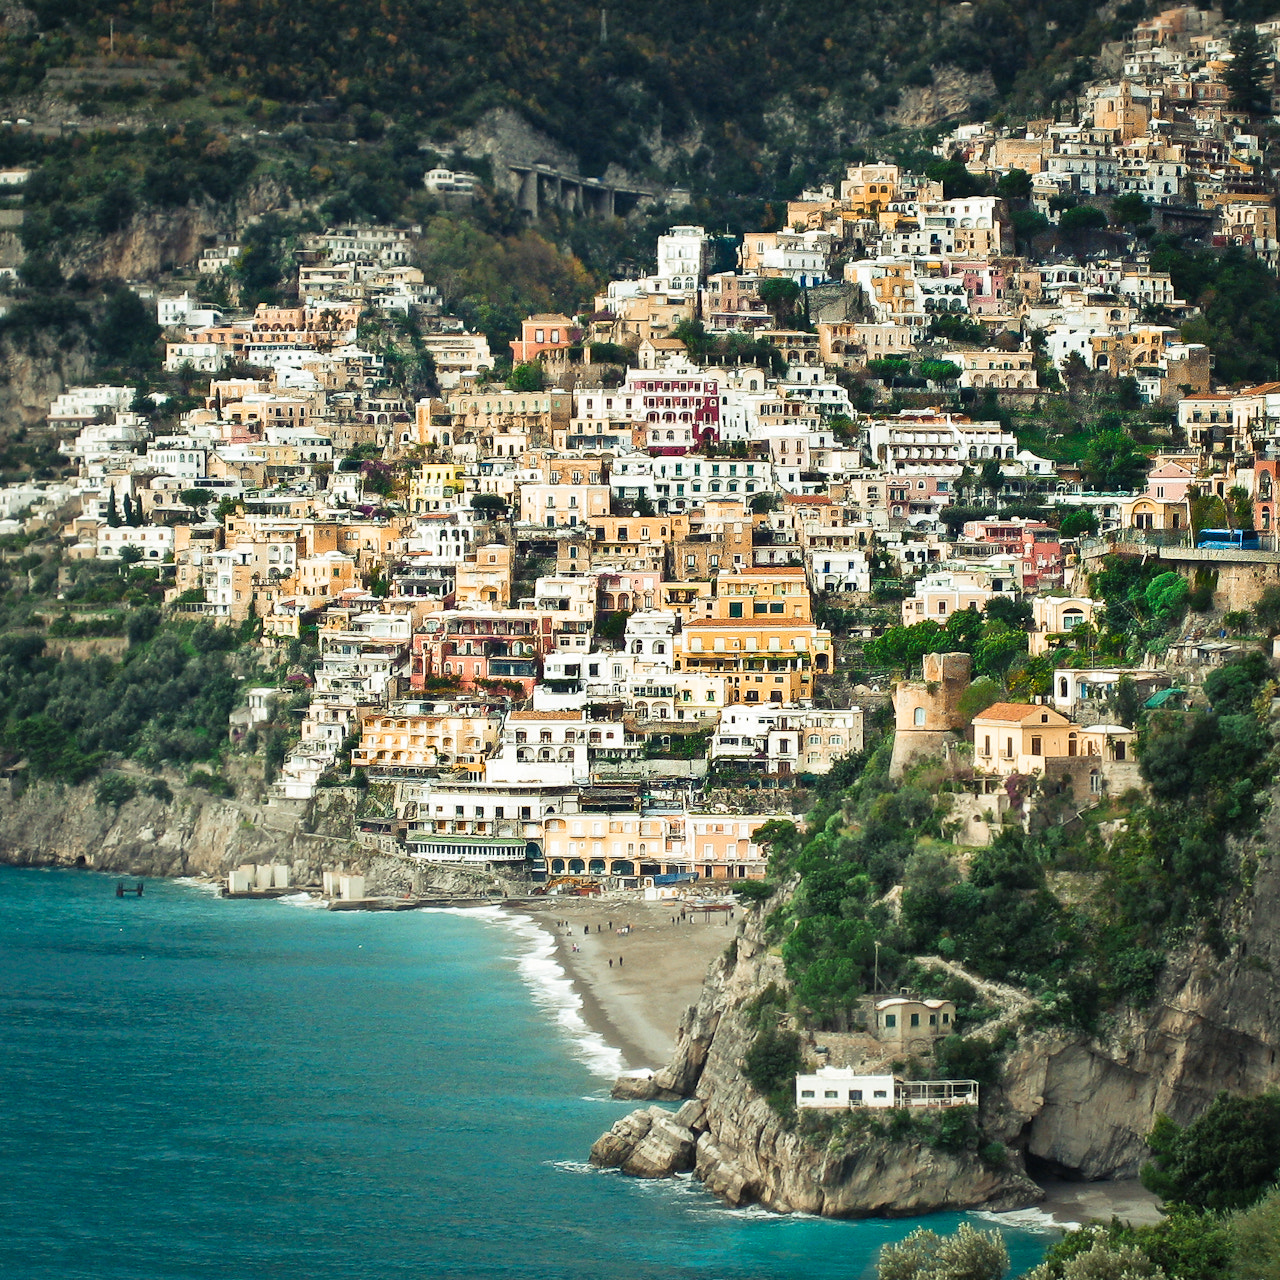 Photograph Positano, Amalfi Coast - Italy by L. G. - luigig75 on 500px